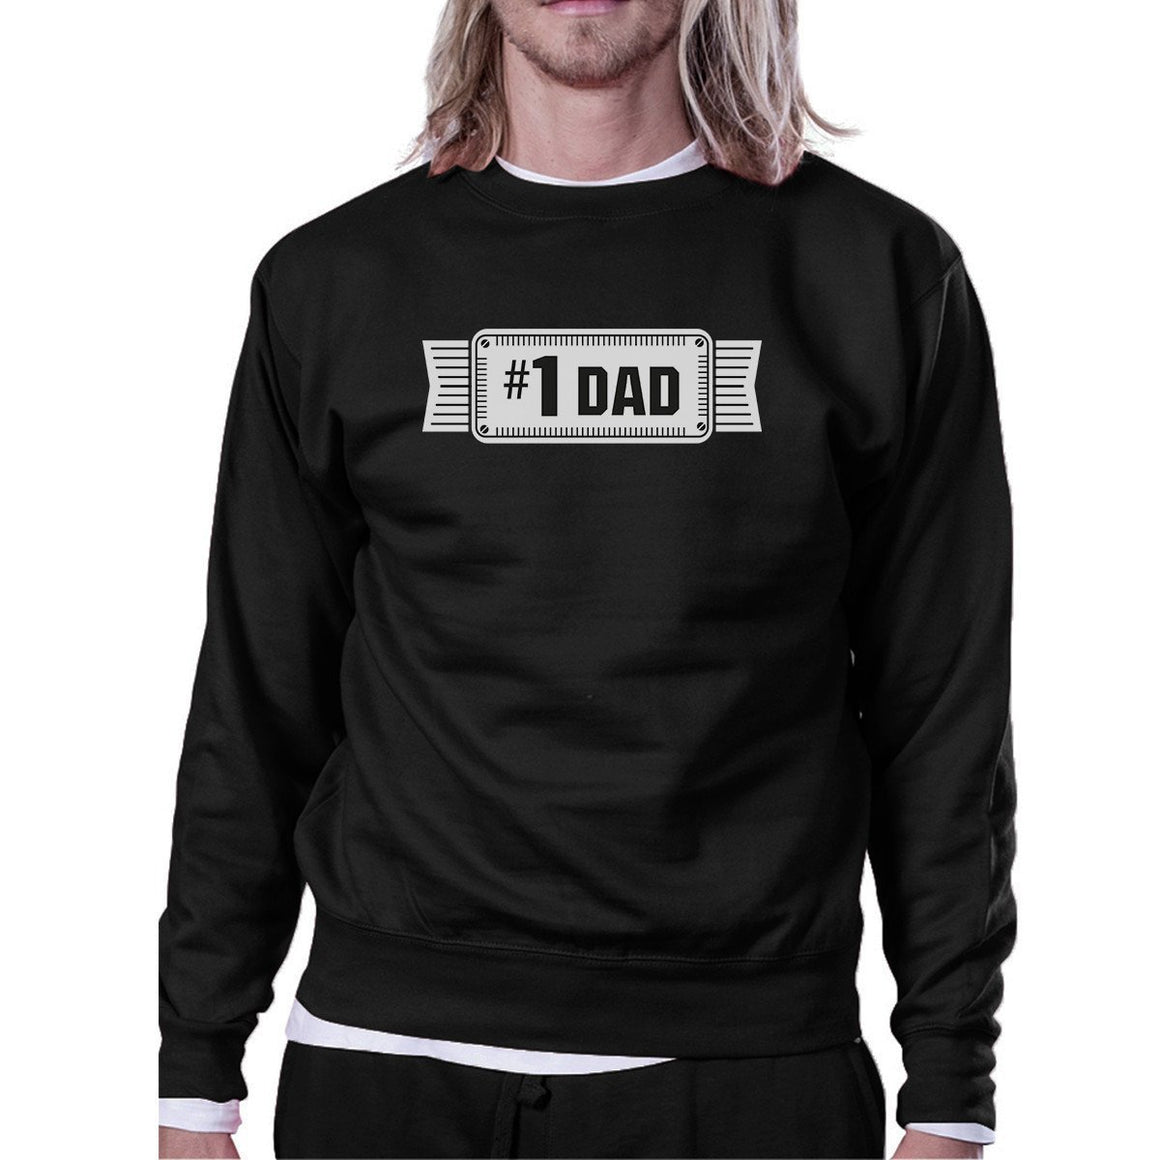 #1 Dad Unisex Black Sweatshirt For Men Perfect Dad's Birthday Gifts